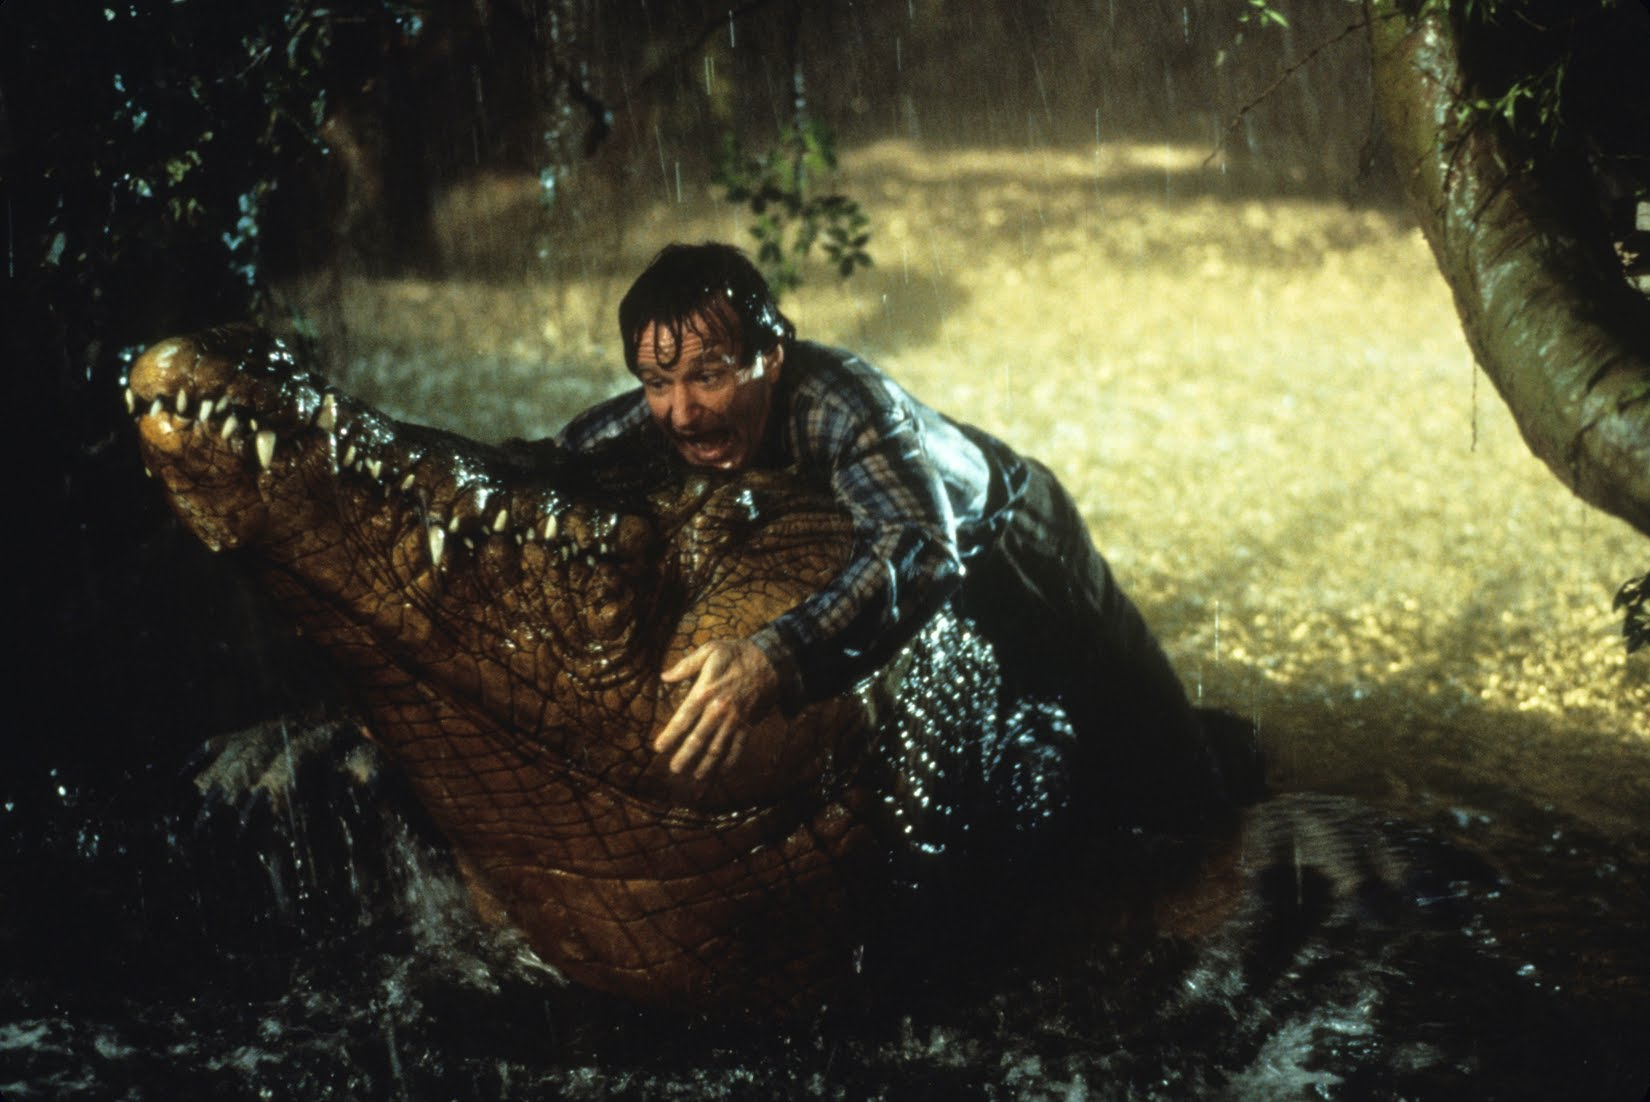 Well The Rock didn't wrestle any crocodiles like Robin Williams did.